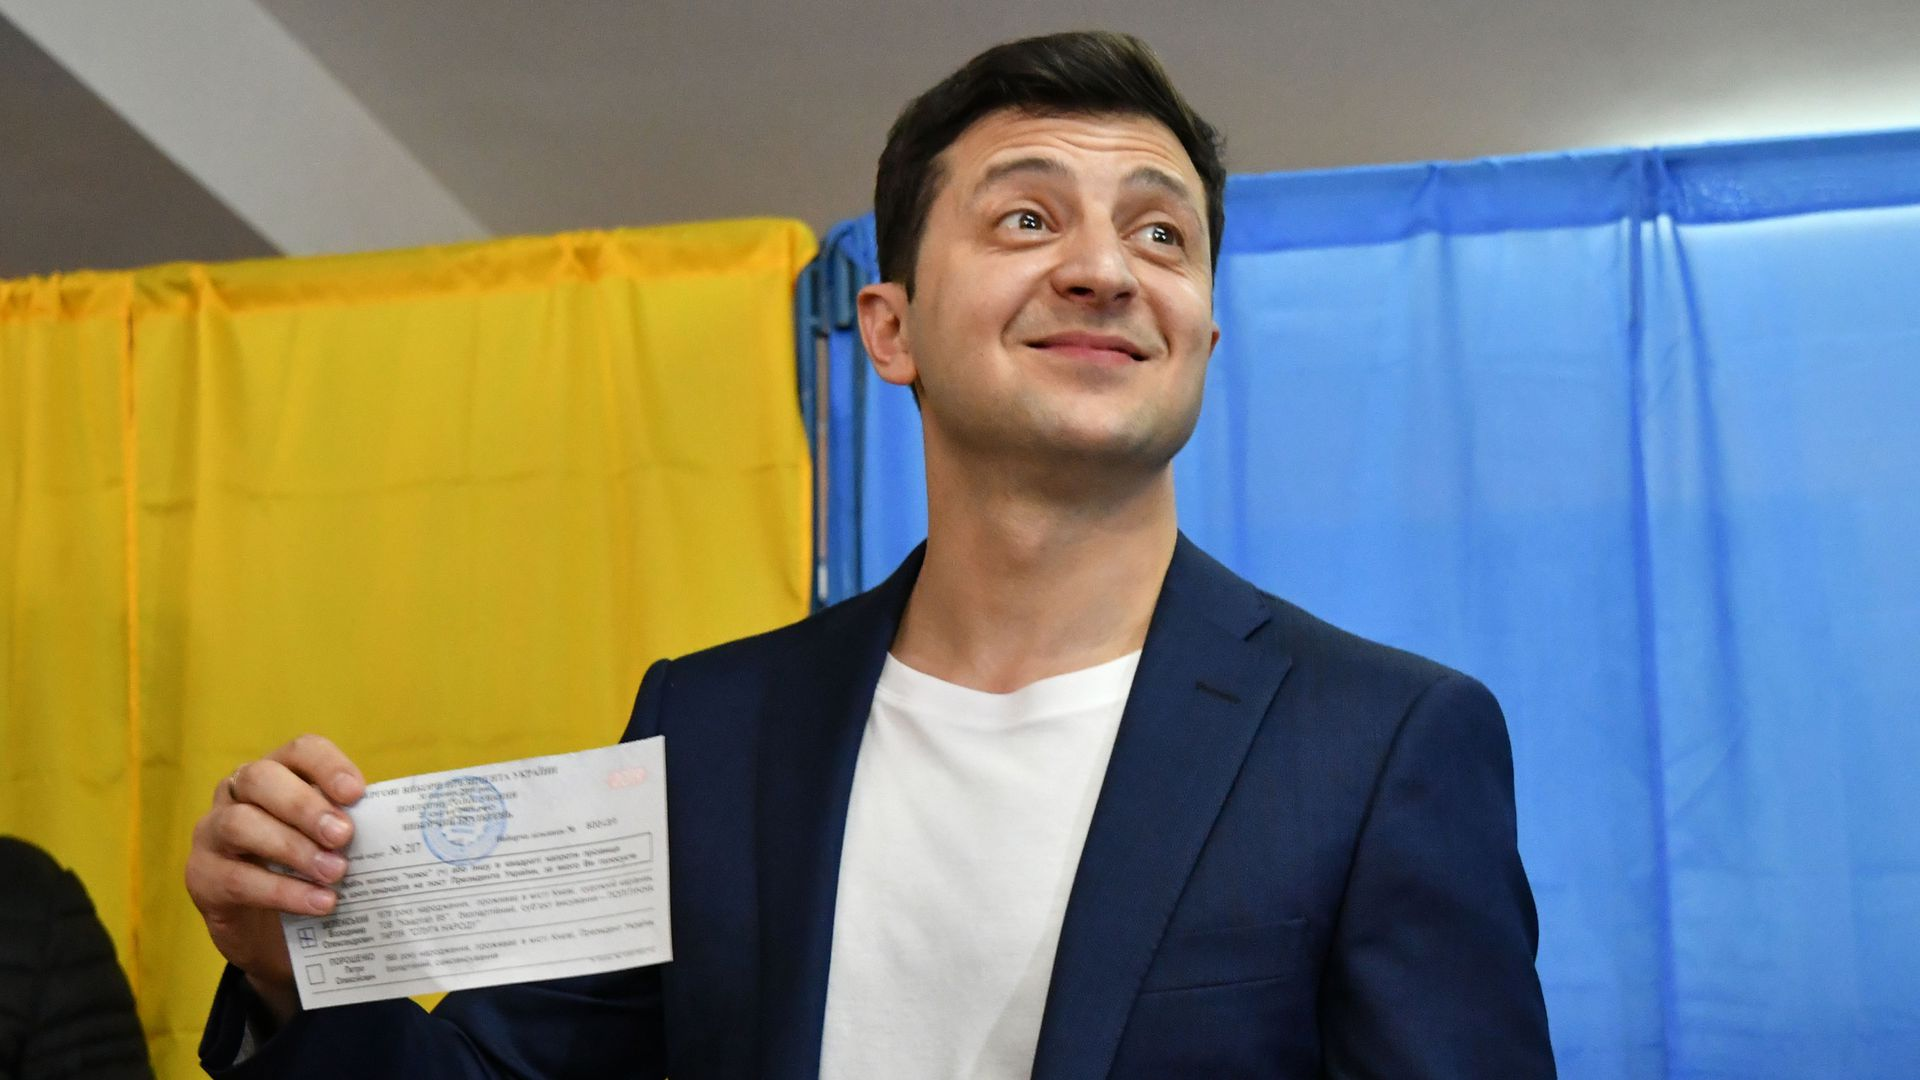 Comedian known for playing president on TV wins Ukrainian election